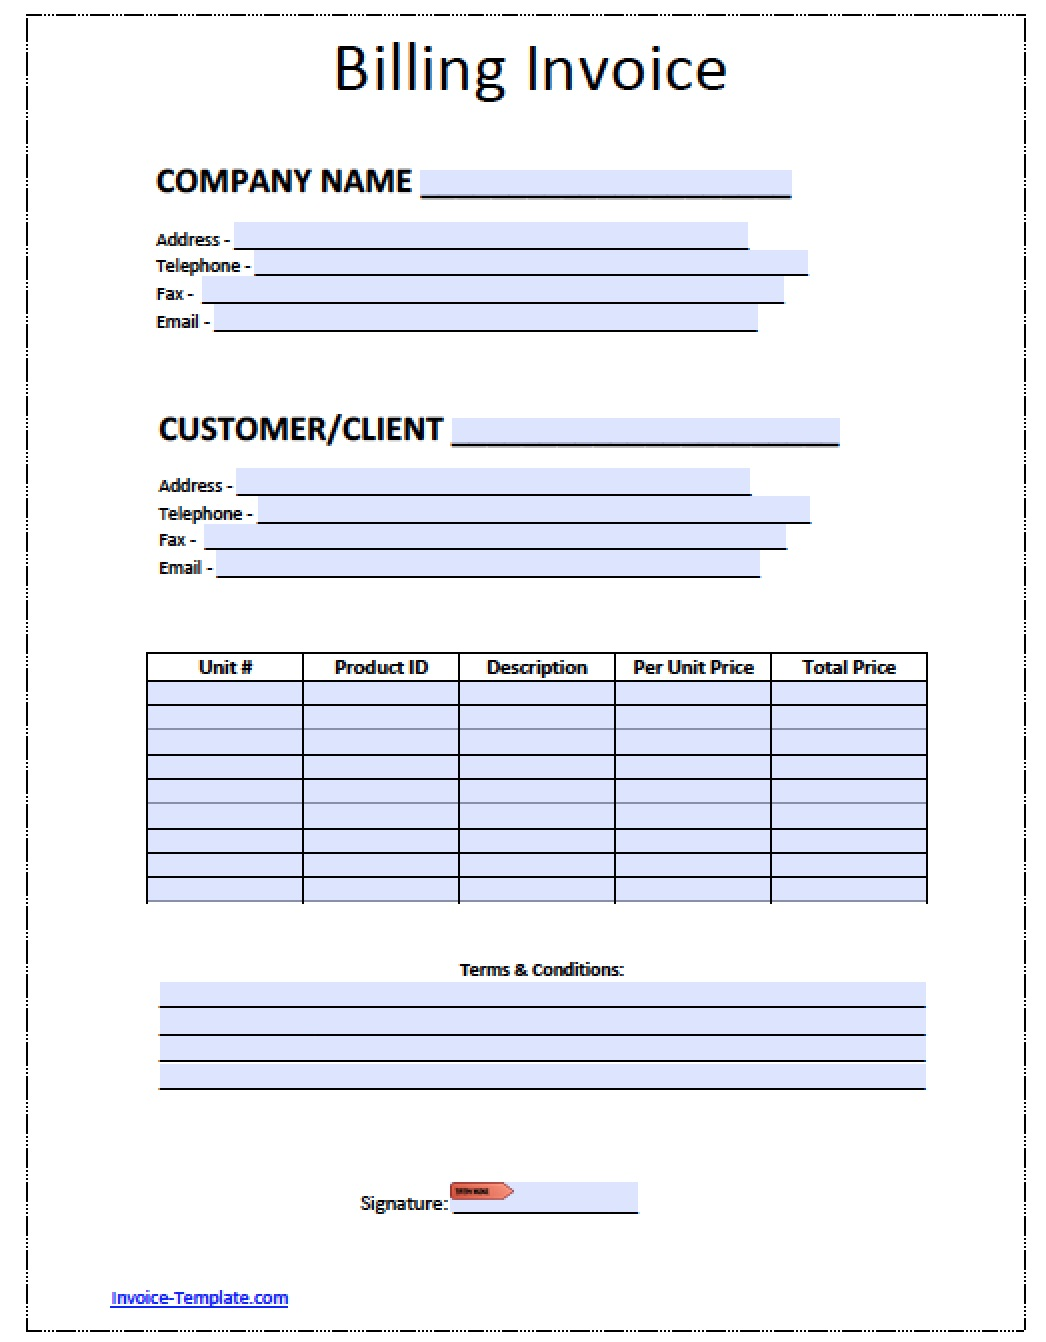 Patriotexpressus  Splendid Billing Invoice Invoices Faq U Cloudflare Support Billing  With Engaging Free Billing Invoice Template  Excel  Pdf  Word Doc  Billing With Adorable Free Invoices Also Invoice Template In Addition Lps Invoice Management And Pay Fedex Invoice Online As Well As Free Invoice Template Word Additionally Invoice From Happytomco With Patriotexpressus  Engaging Billing Invoice Invoices Faq U Cloudflare Support Billing  With Adorable Free Billing Invoice Template  Excel  Pdf  Word Doc  Billing And Splendid Free Invoices Also Invoice Template In Addition Lps Invoice Management From Happytomco